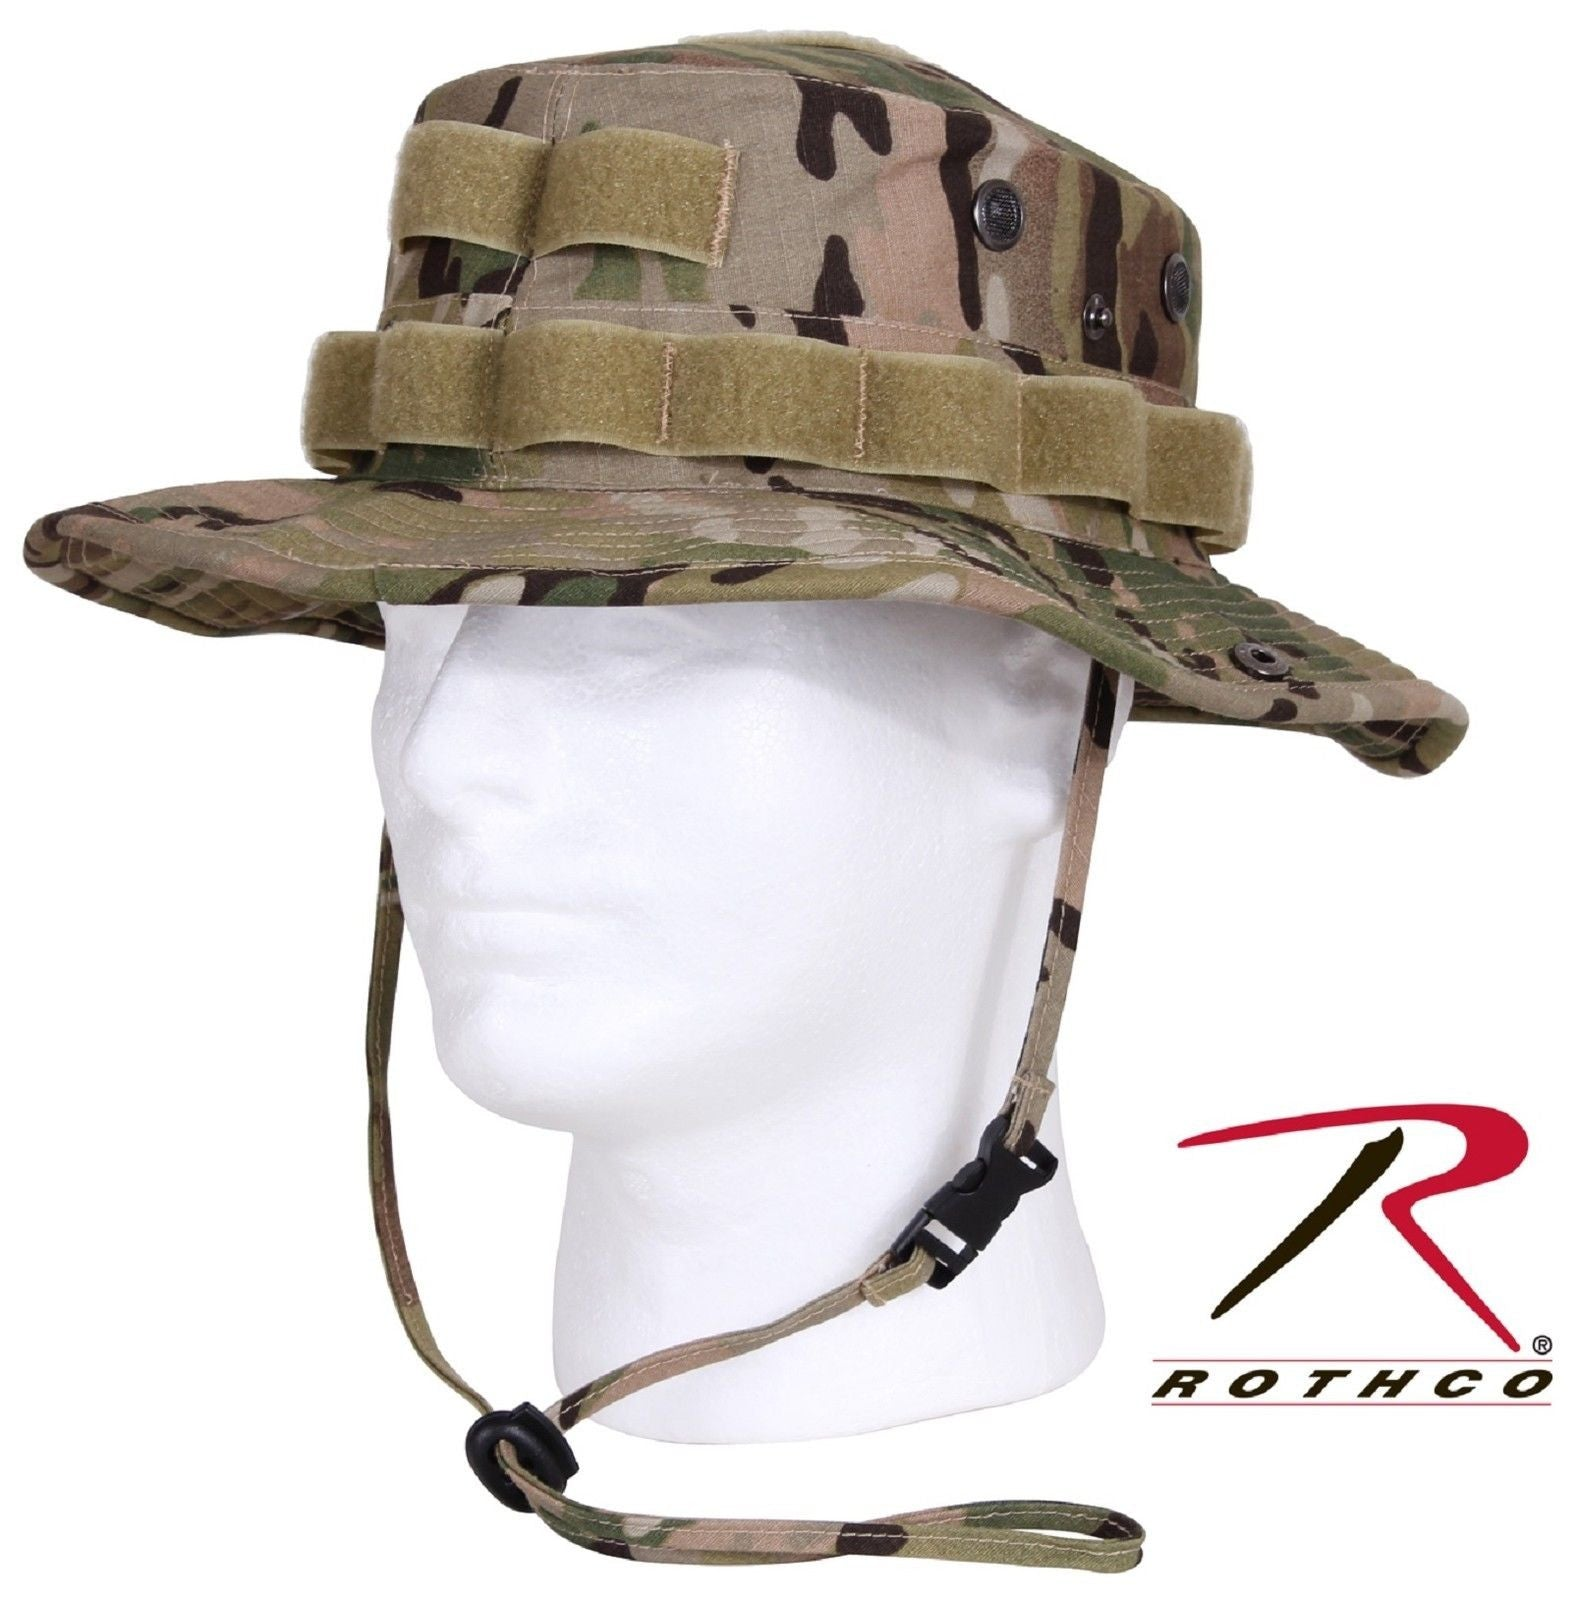 603dc8aaa3c MultiCam Camouflage Tactical Operator Cotton Ripstop Boonie Hat Rothco